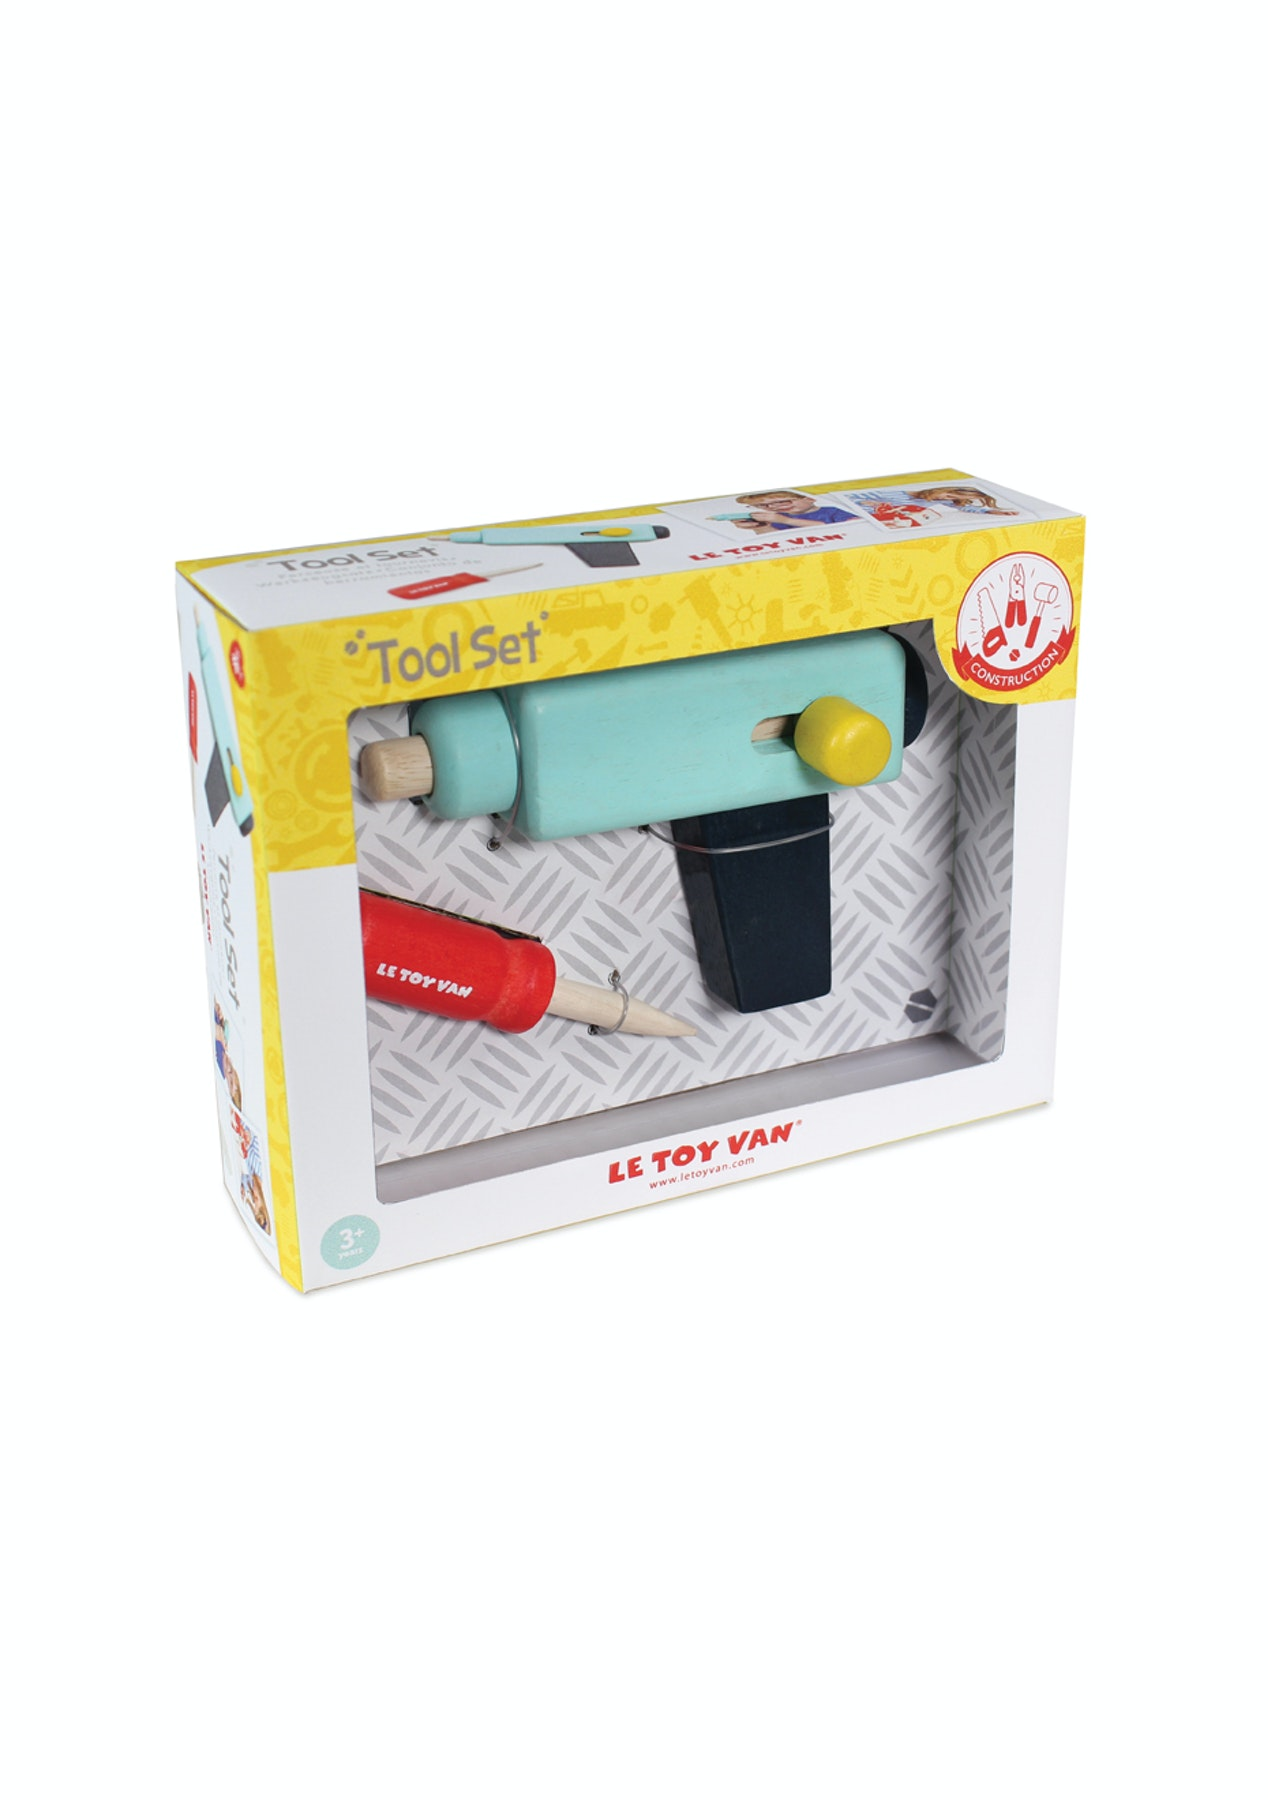 Remarkable Le Toy Van Tool Set Gamerscity Chair Design For Home Gamerscityorg